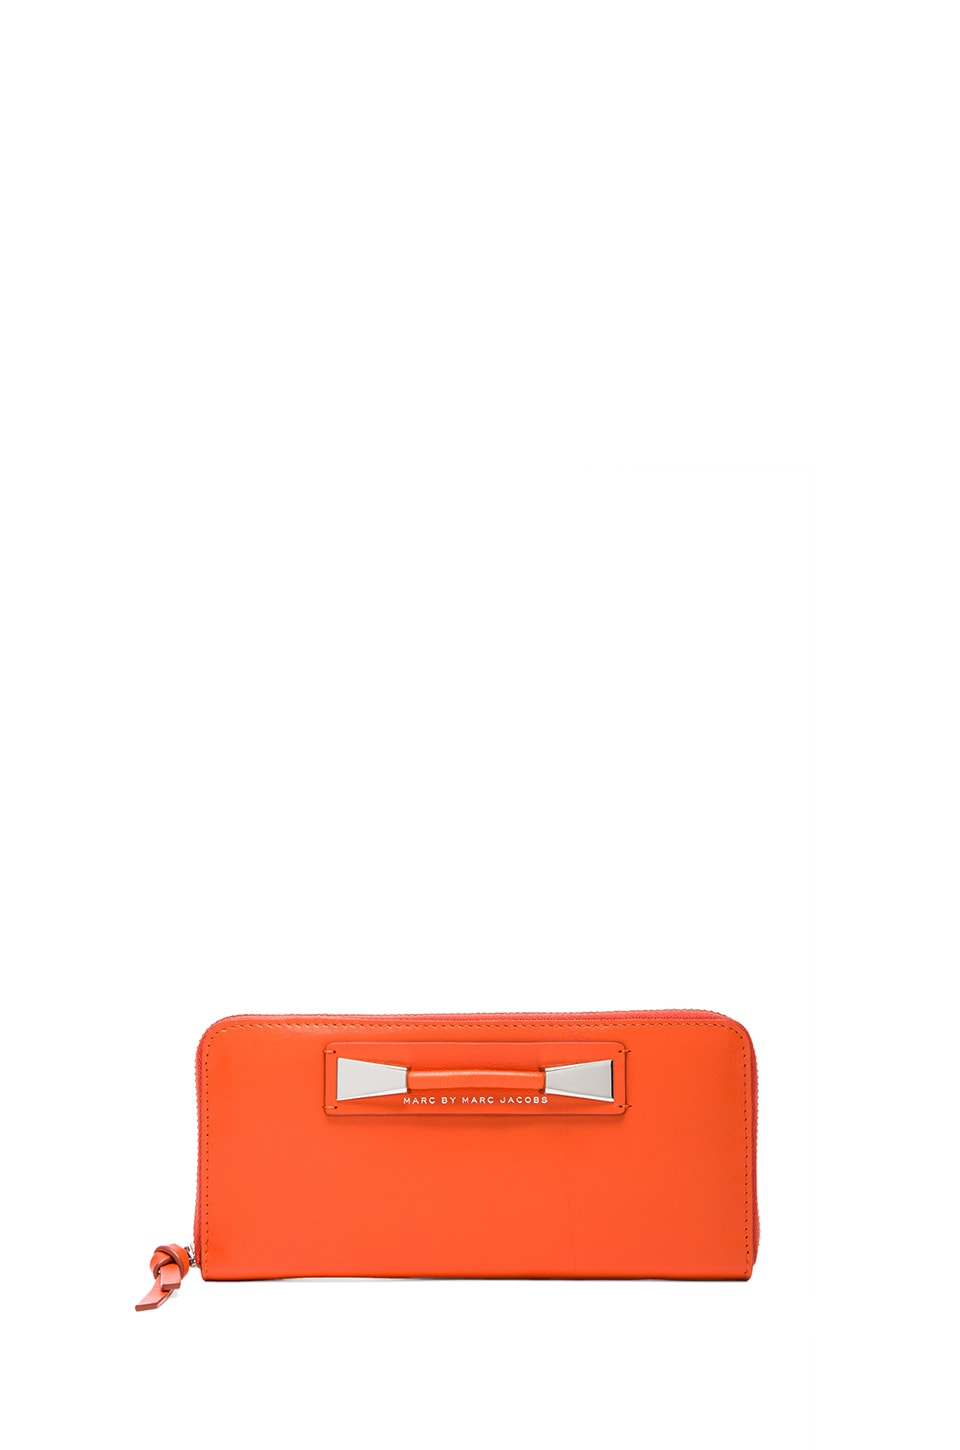 Marc by Marc Jacobs Femme Fatale Slim Zip Around Wallet in Spiced Orange